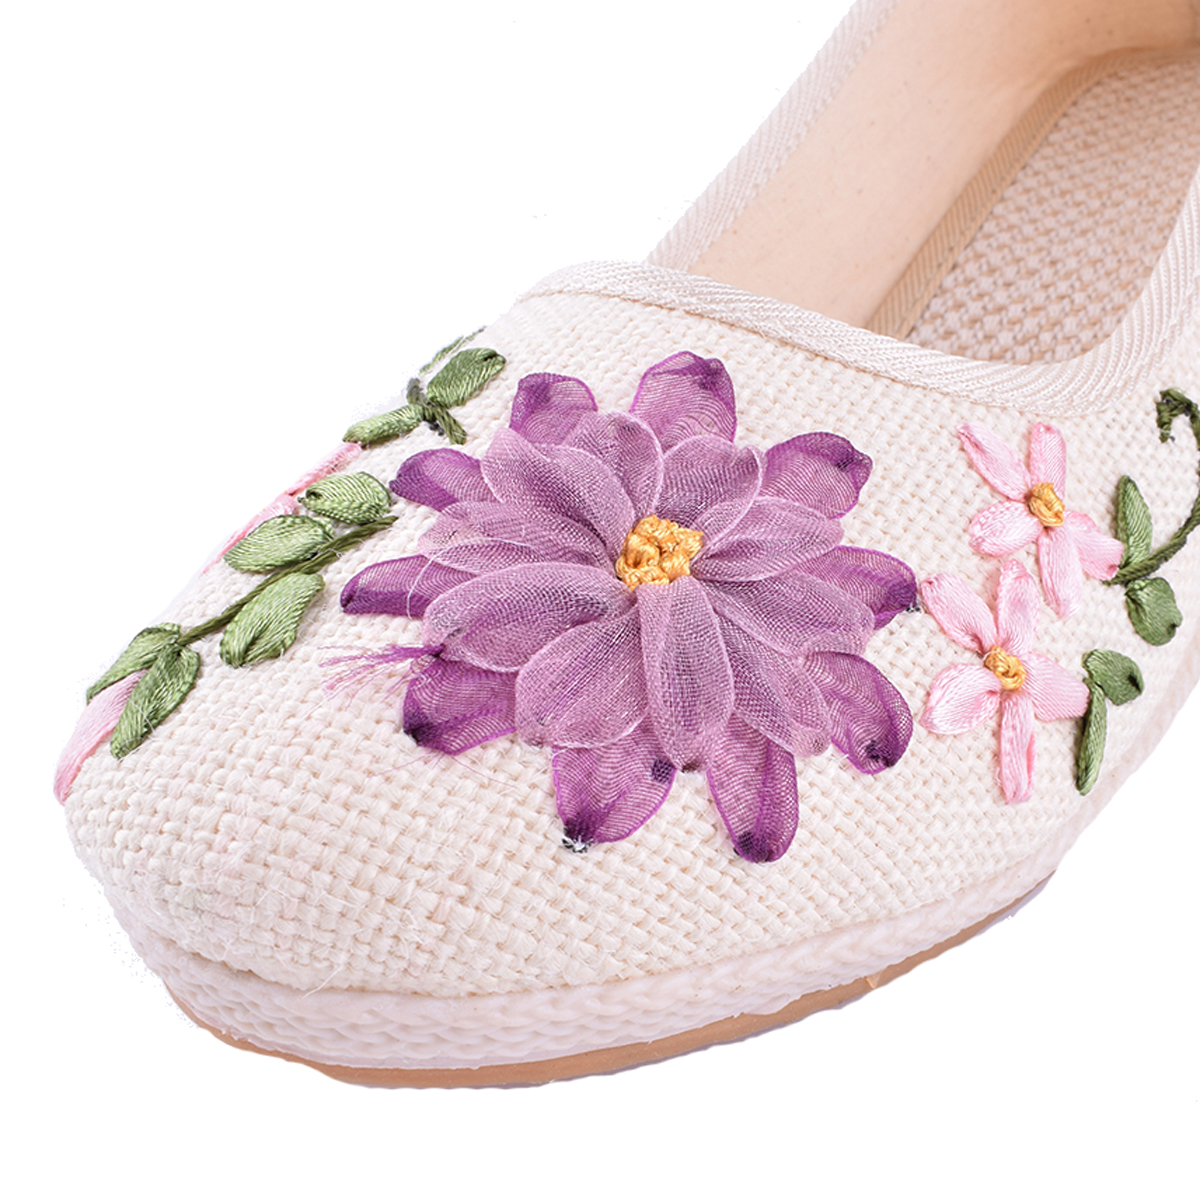 Vintage Embroidered Women Shoes Ethnic Natural Linen Shoes Slope Heel Retro Cloth Canvas Soft soled Dance Single Shoes in Women 39 s Flats from Shoes